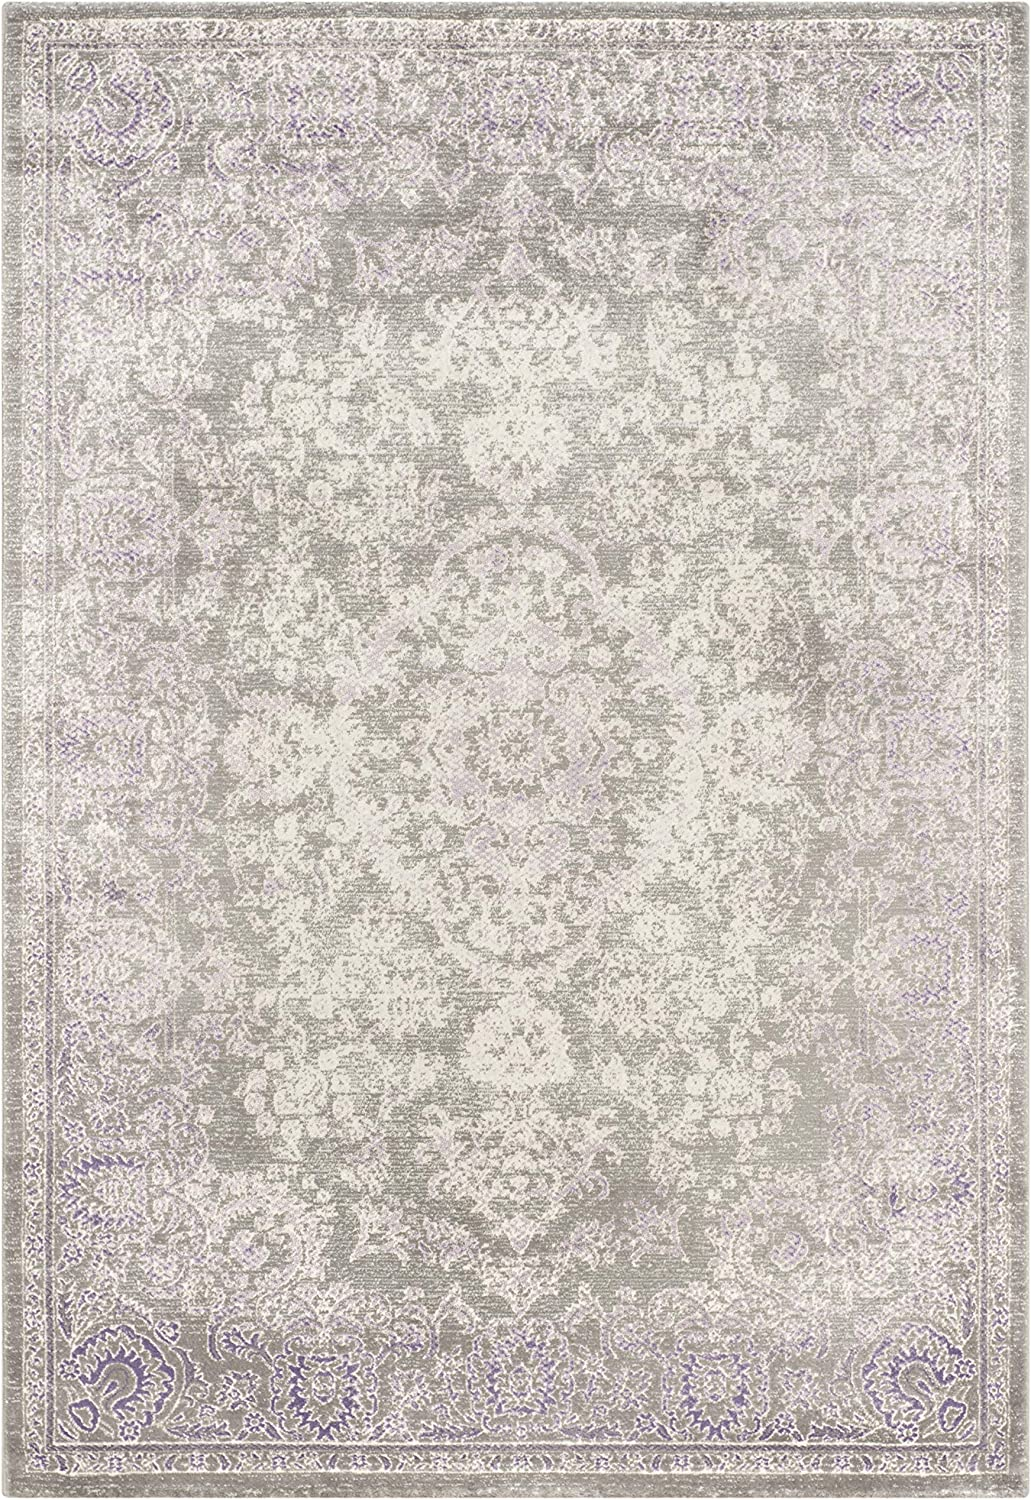 Safavieh Passion Collection PAS402G Directly managed store Vintage New York Mall Distressed Area Rug